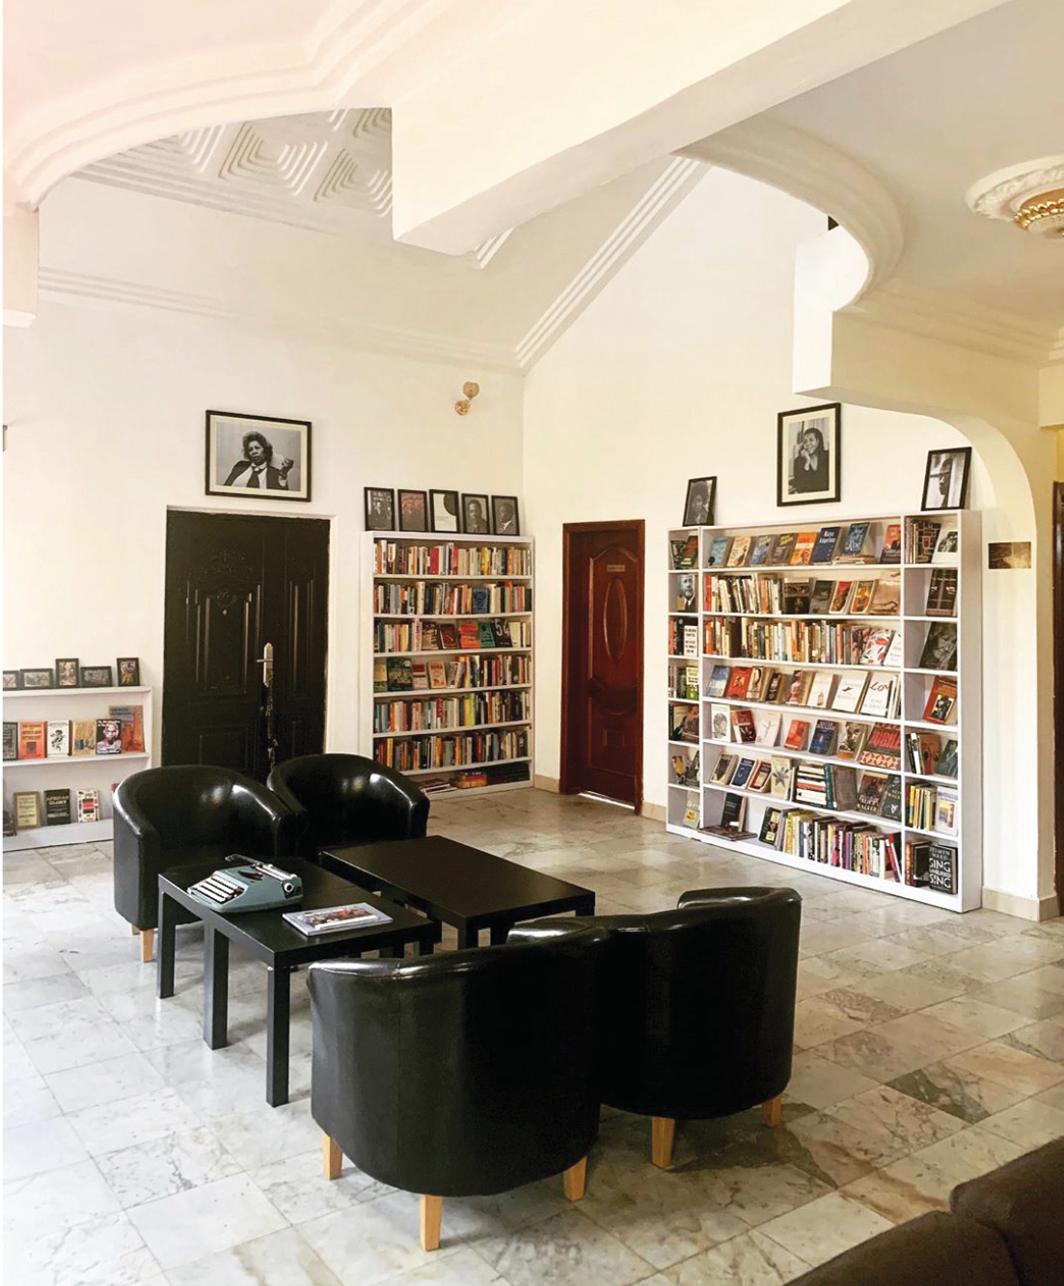 Library of Africa and the African Diaspora, Accra, Ghana, 2020.